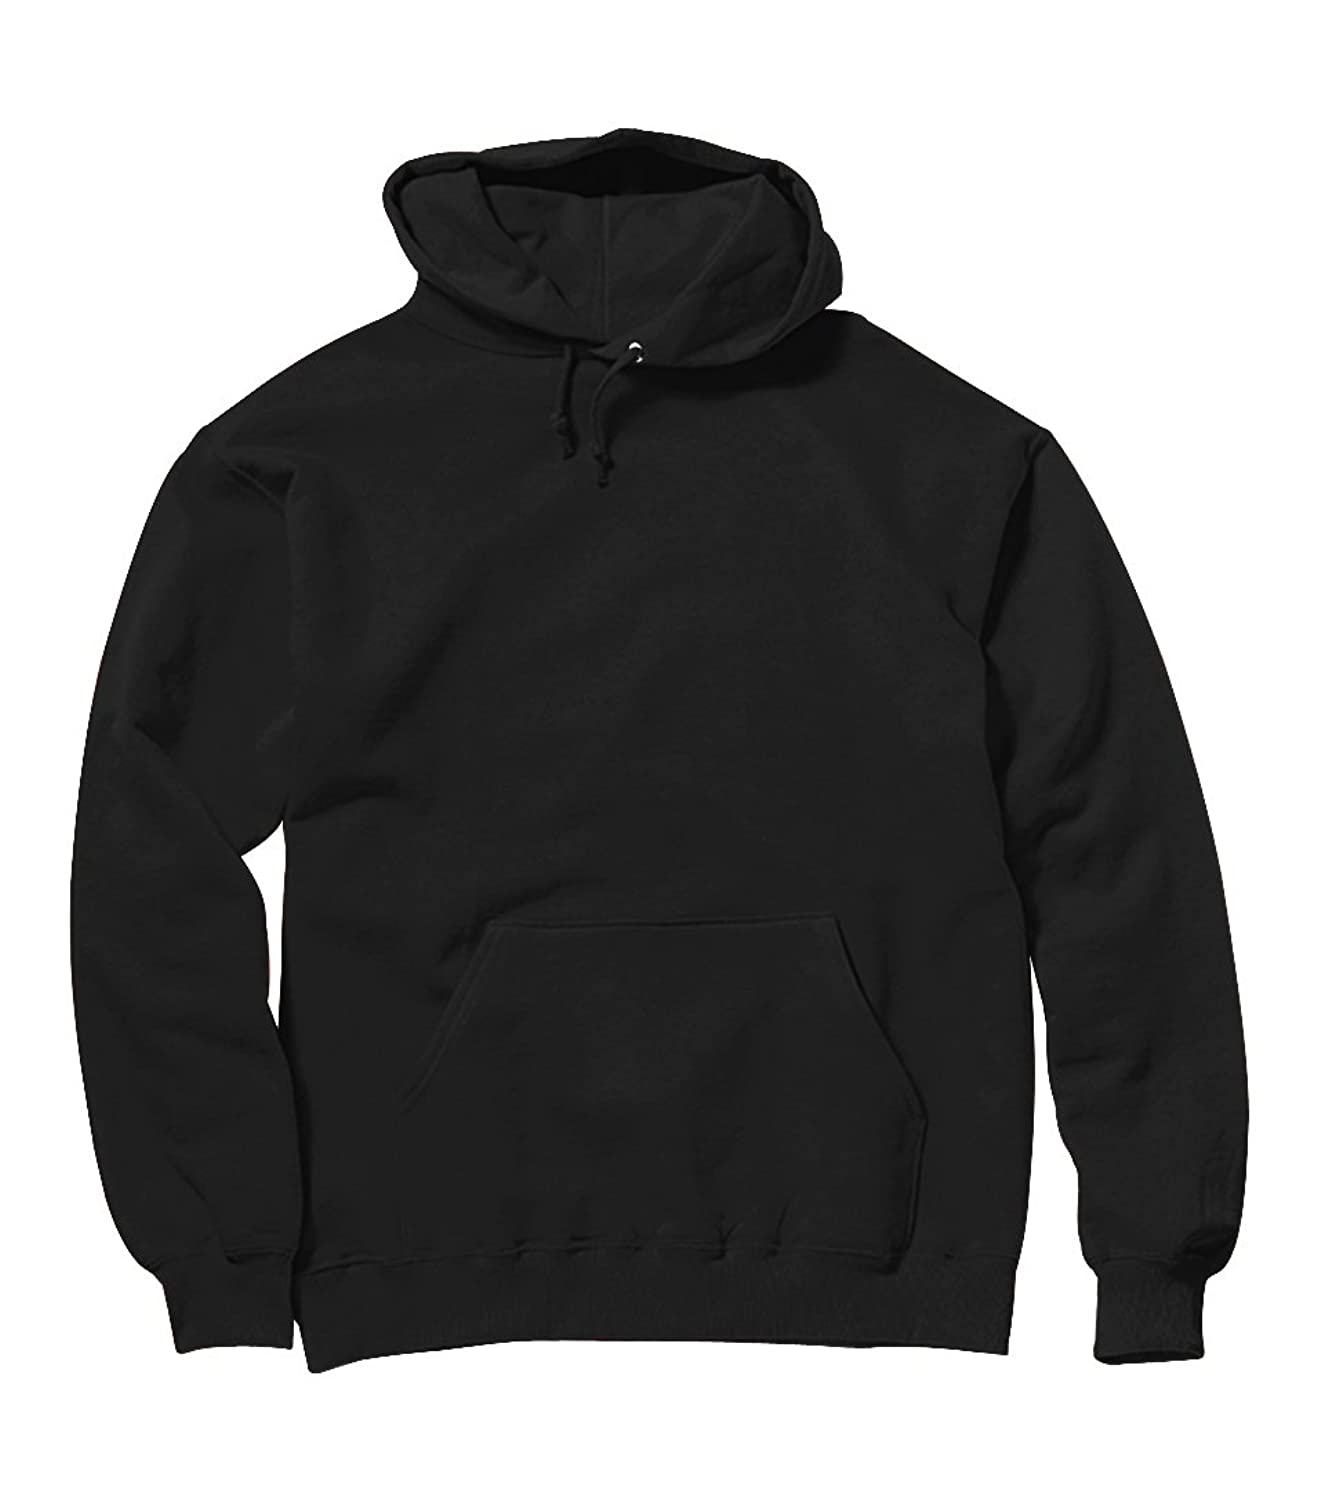 Plain Black heavyweight Pullover Hoodie Blank Hooded Sweatshirt ...